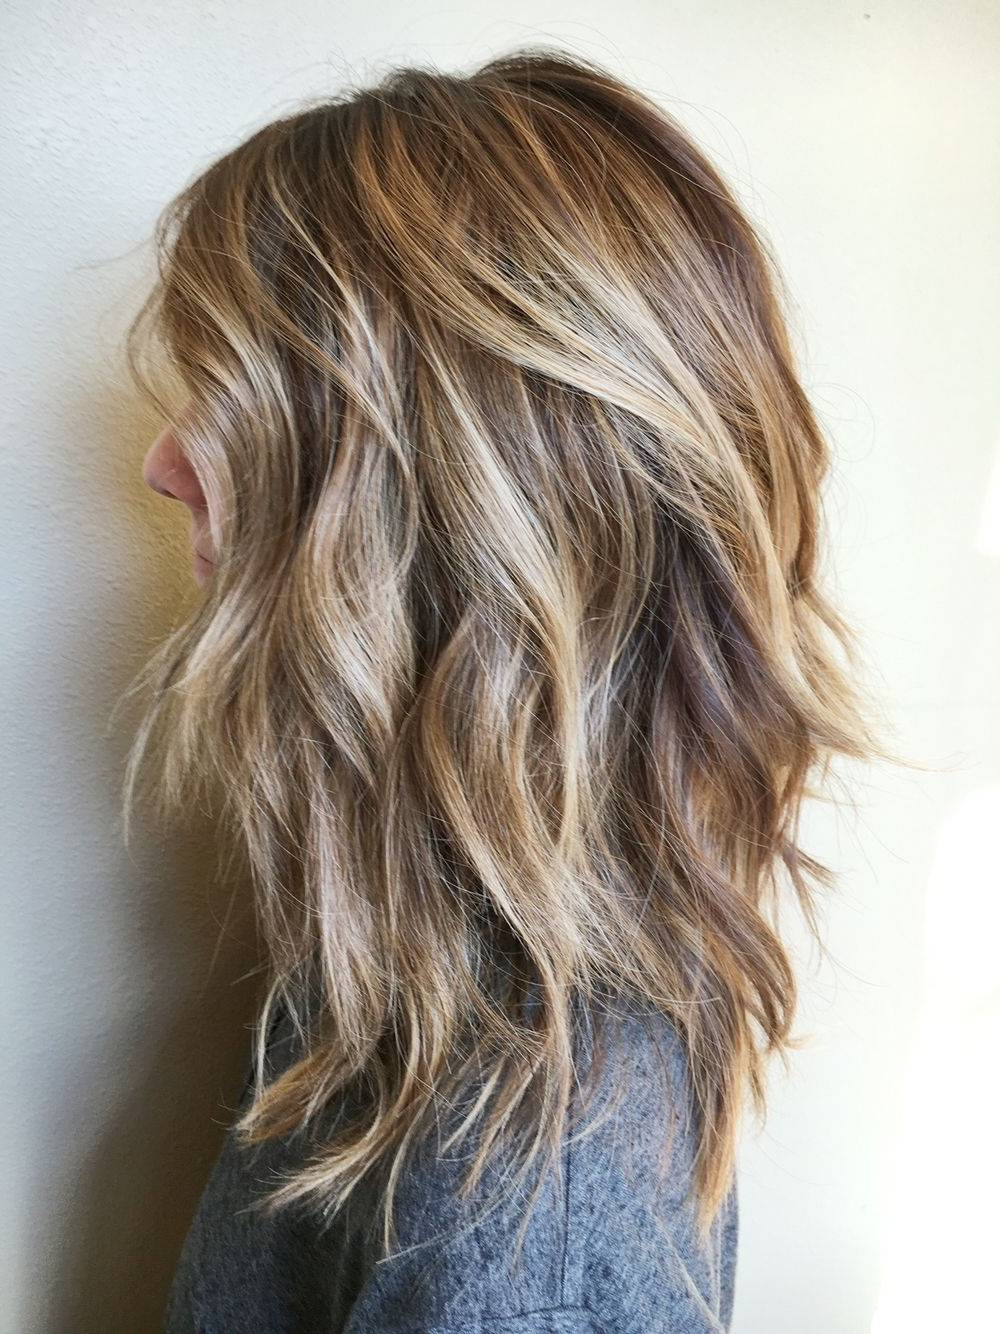 Well Liked Casual Bright Waves Blonde Hairstyles With Bangs With 40 Amazing Medium Length Hairstyles & Shoulder Length Haircuts (View 18 of 20)